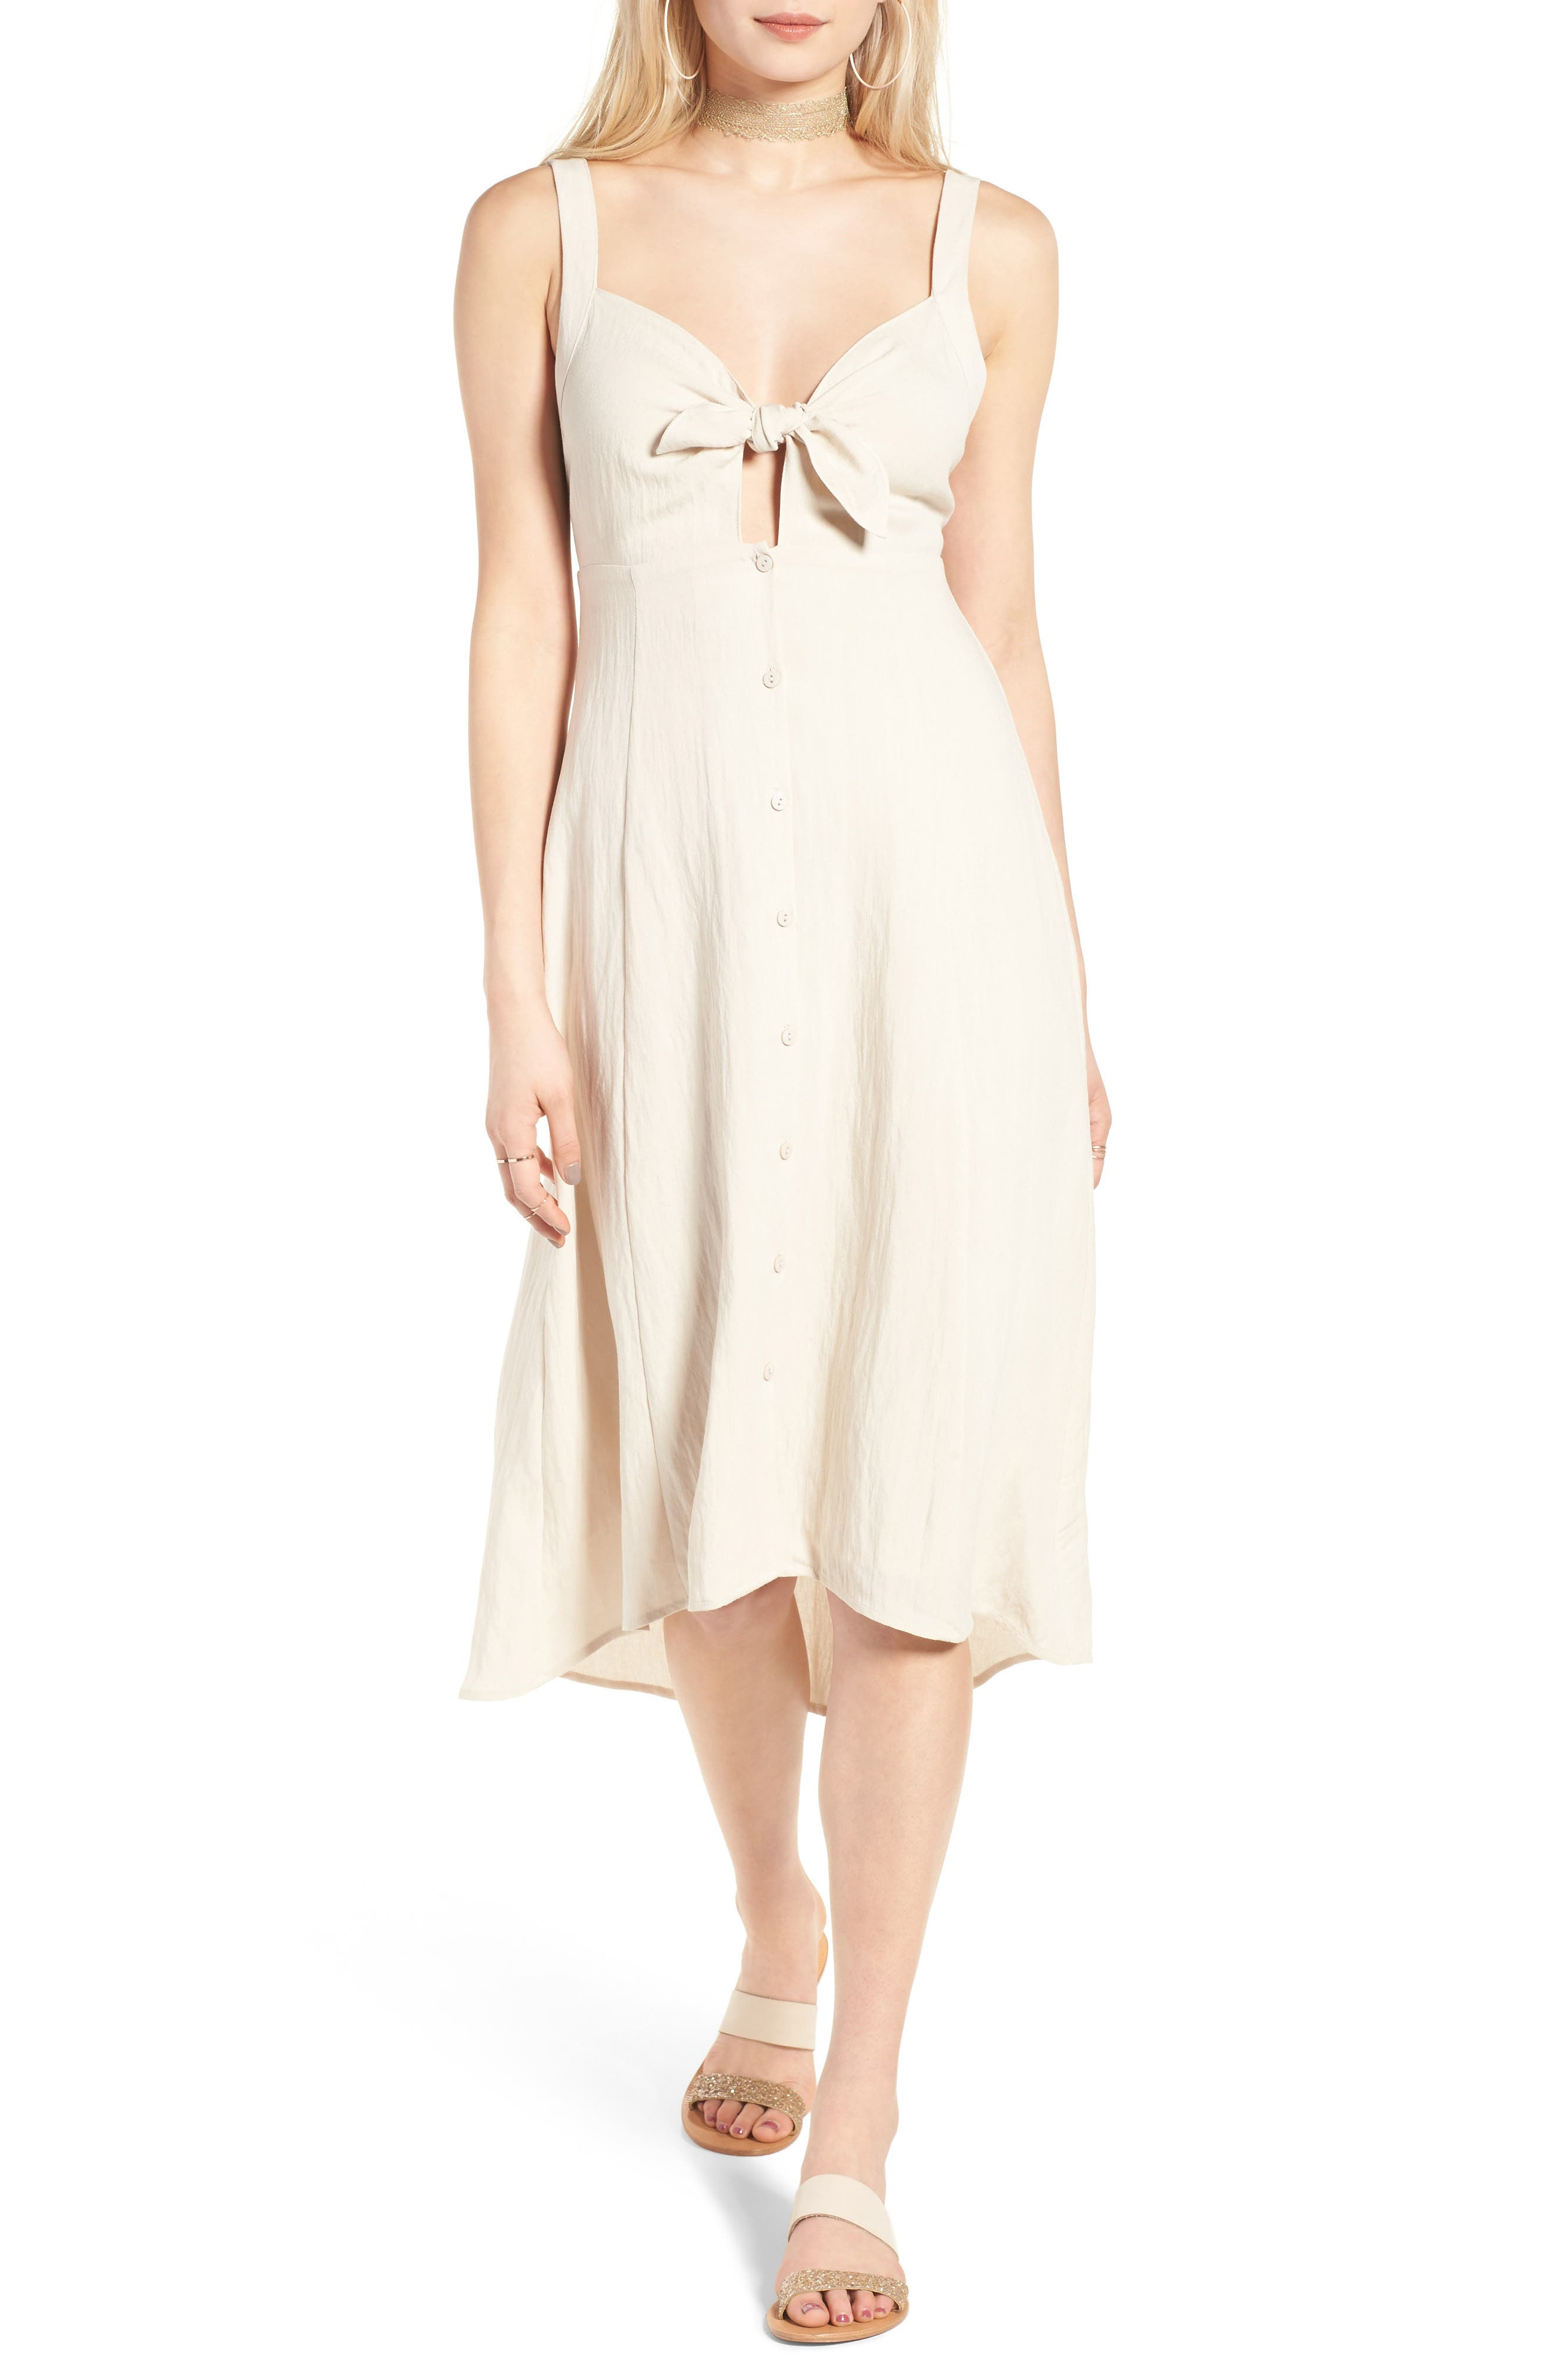 Main Image - ASTR the Label Tie Front Midi Dress